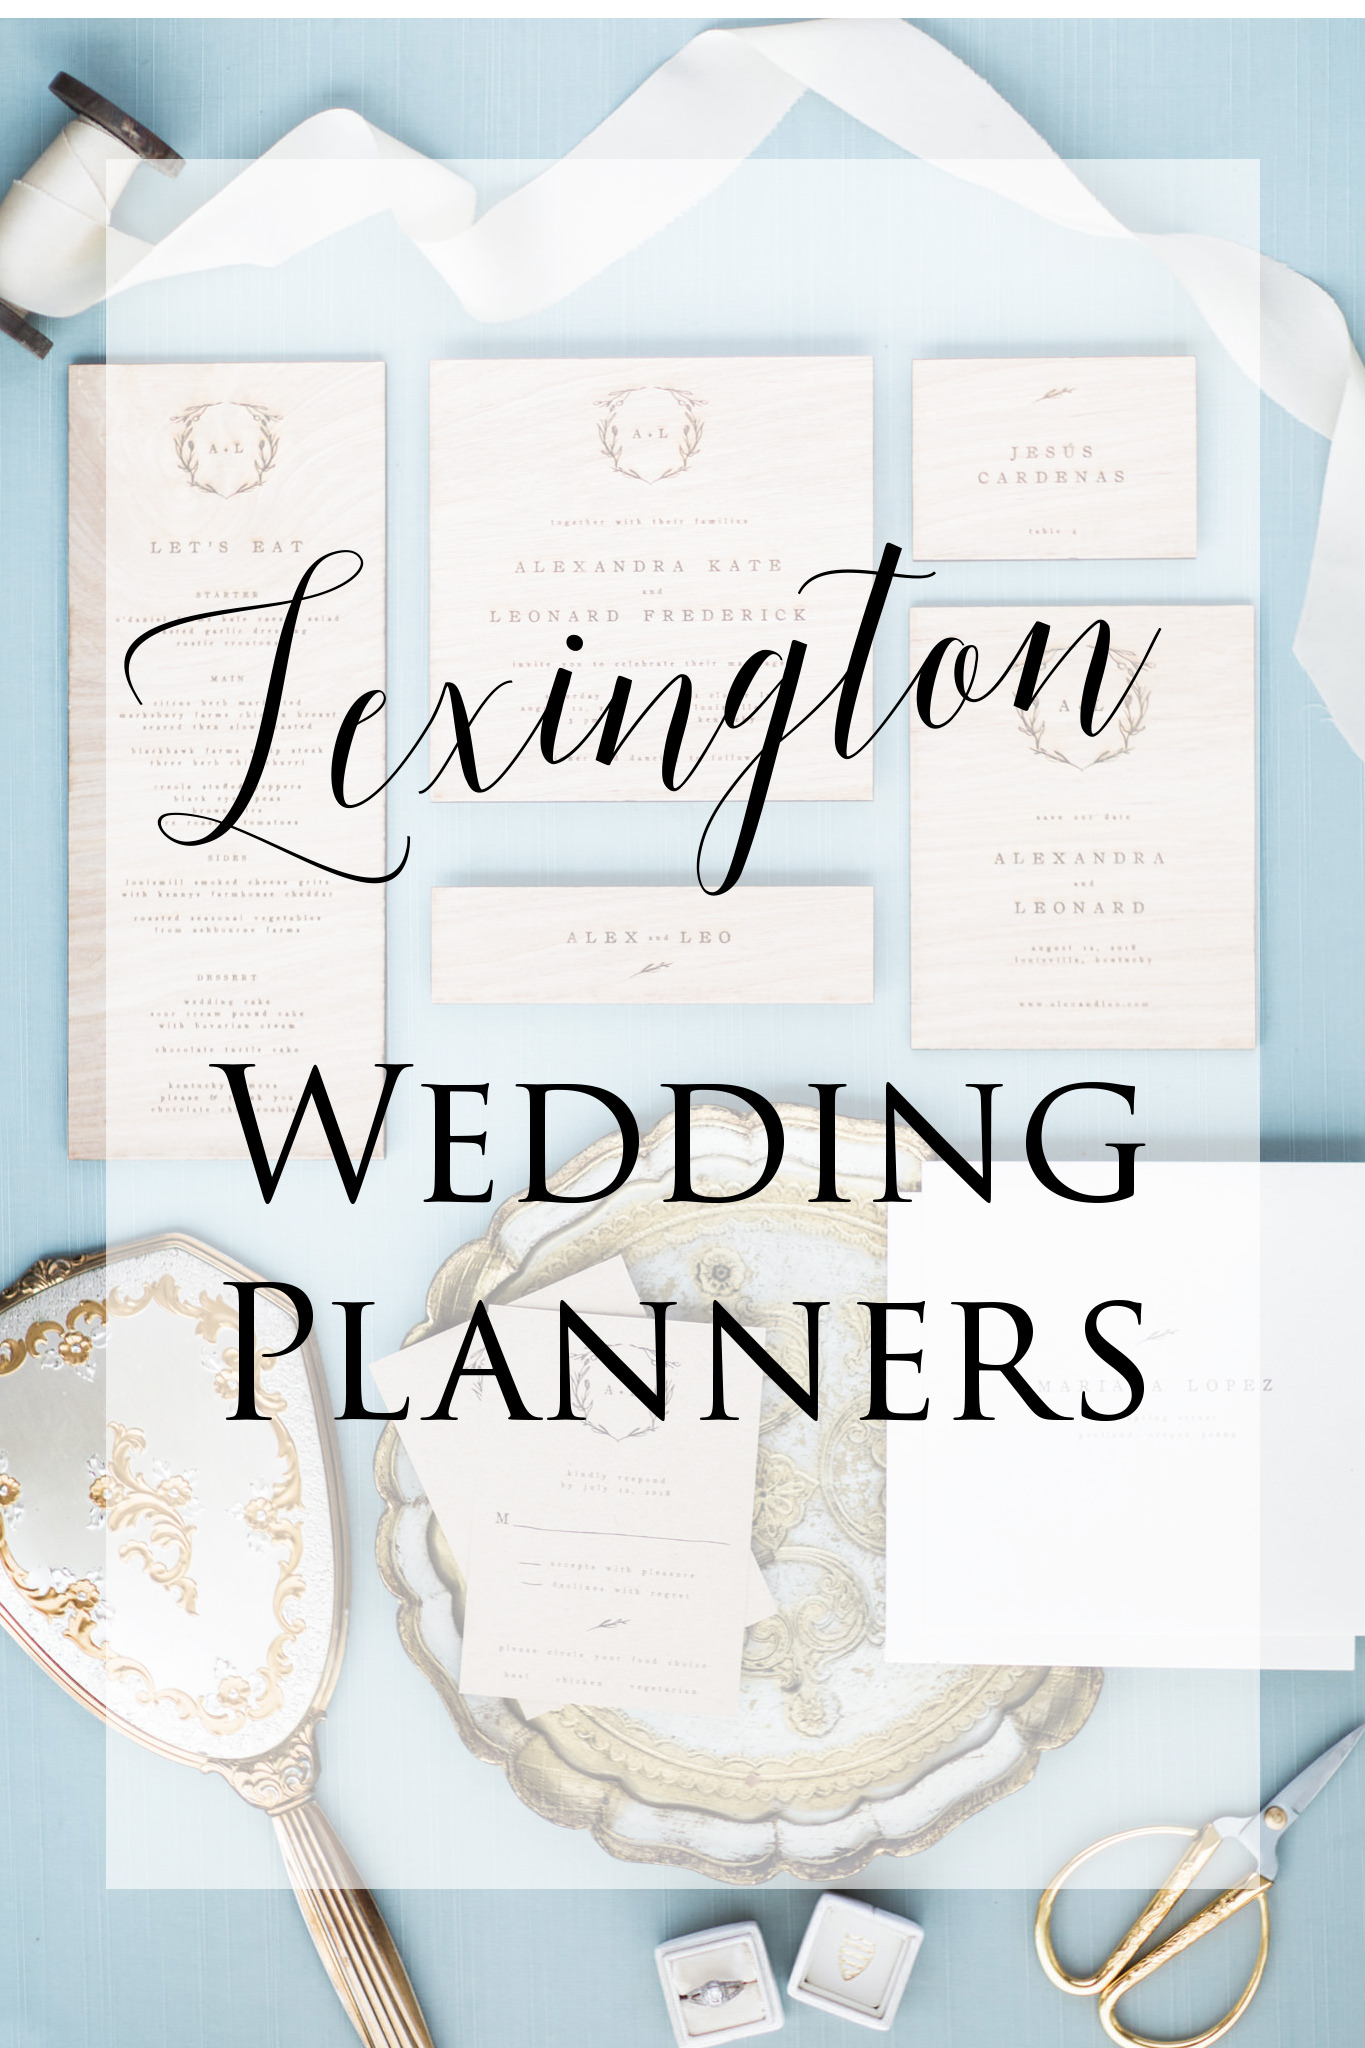 Wedding Planners in Lexington Ky - Interested in finding wedding planner for your Lexington Kentucky wedding? Maybe you're just trying to find a wedding planner in Kentucky to help style, plan, and ensure your wedding goes smoothly...read more